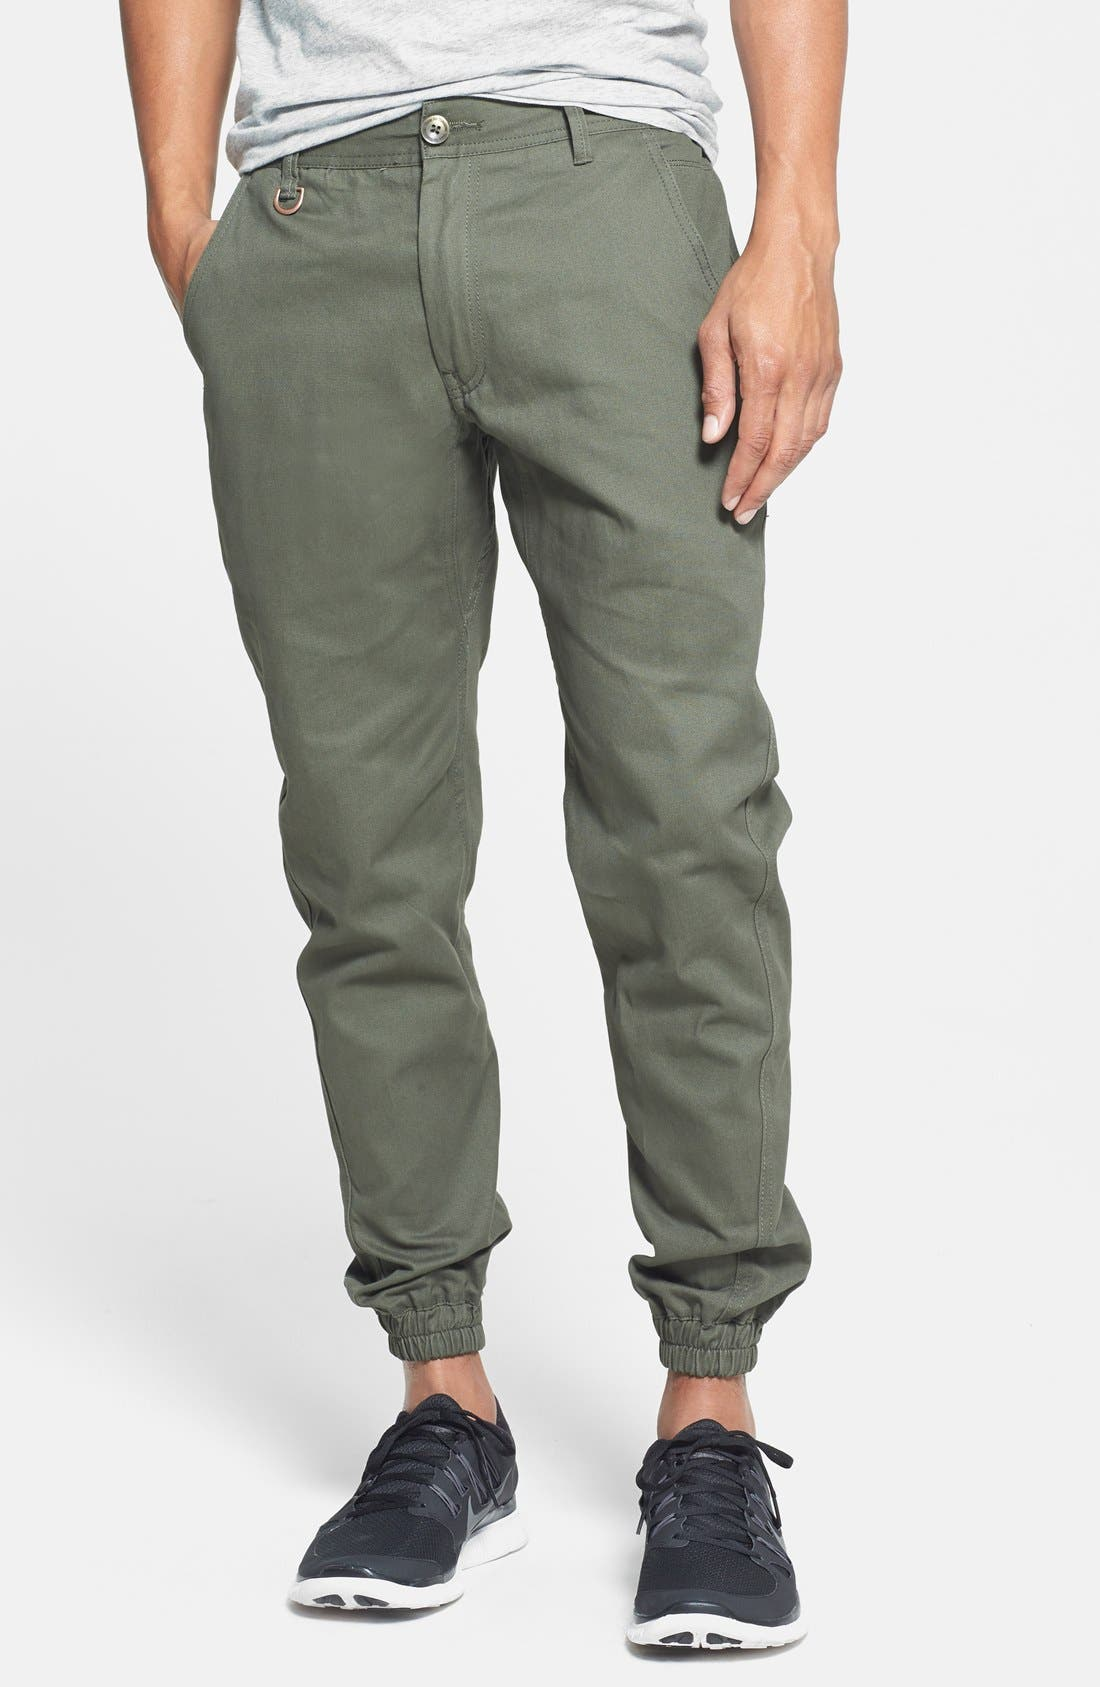 Main Image - PUBLISH BRAND Tailored Fit Jogger Chinos